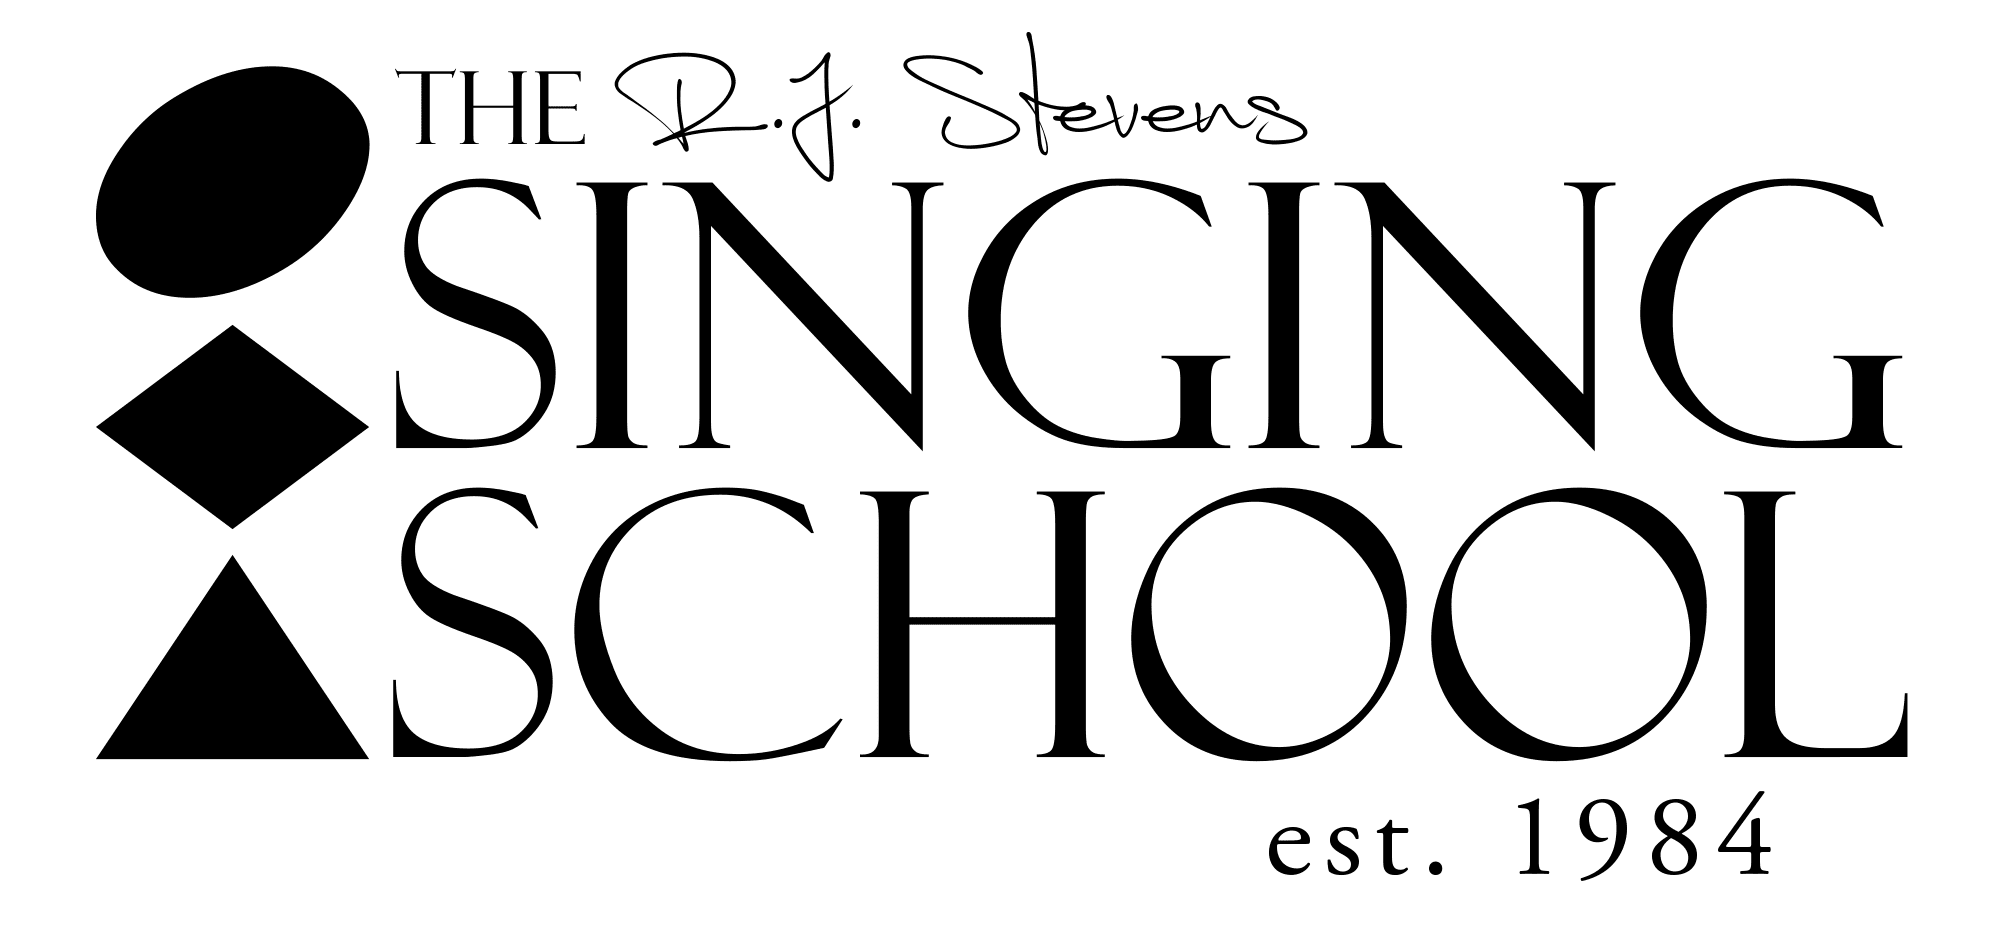 The R.J. Stevens Singing School - est. 1984